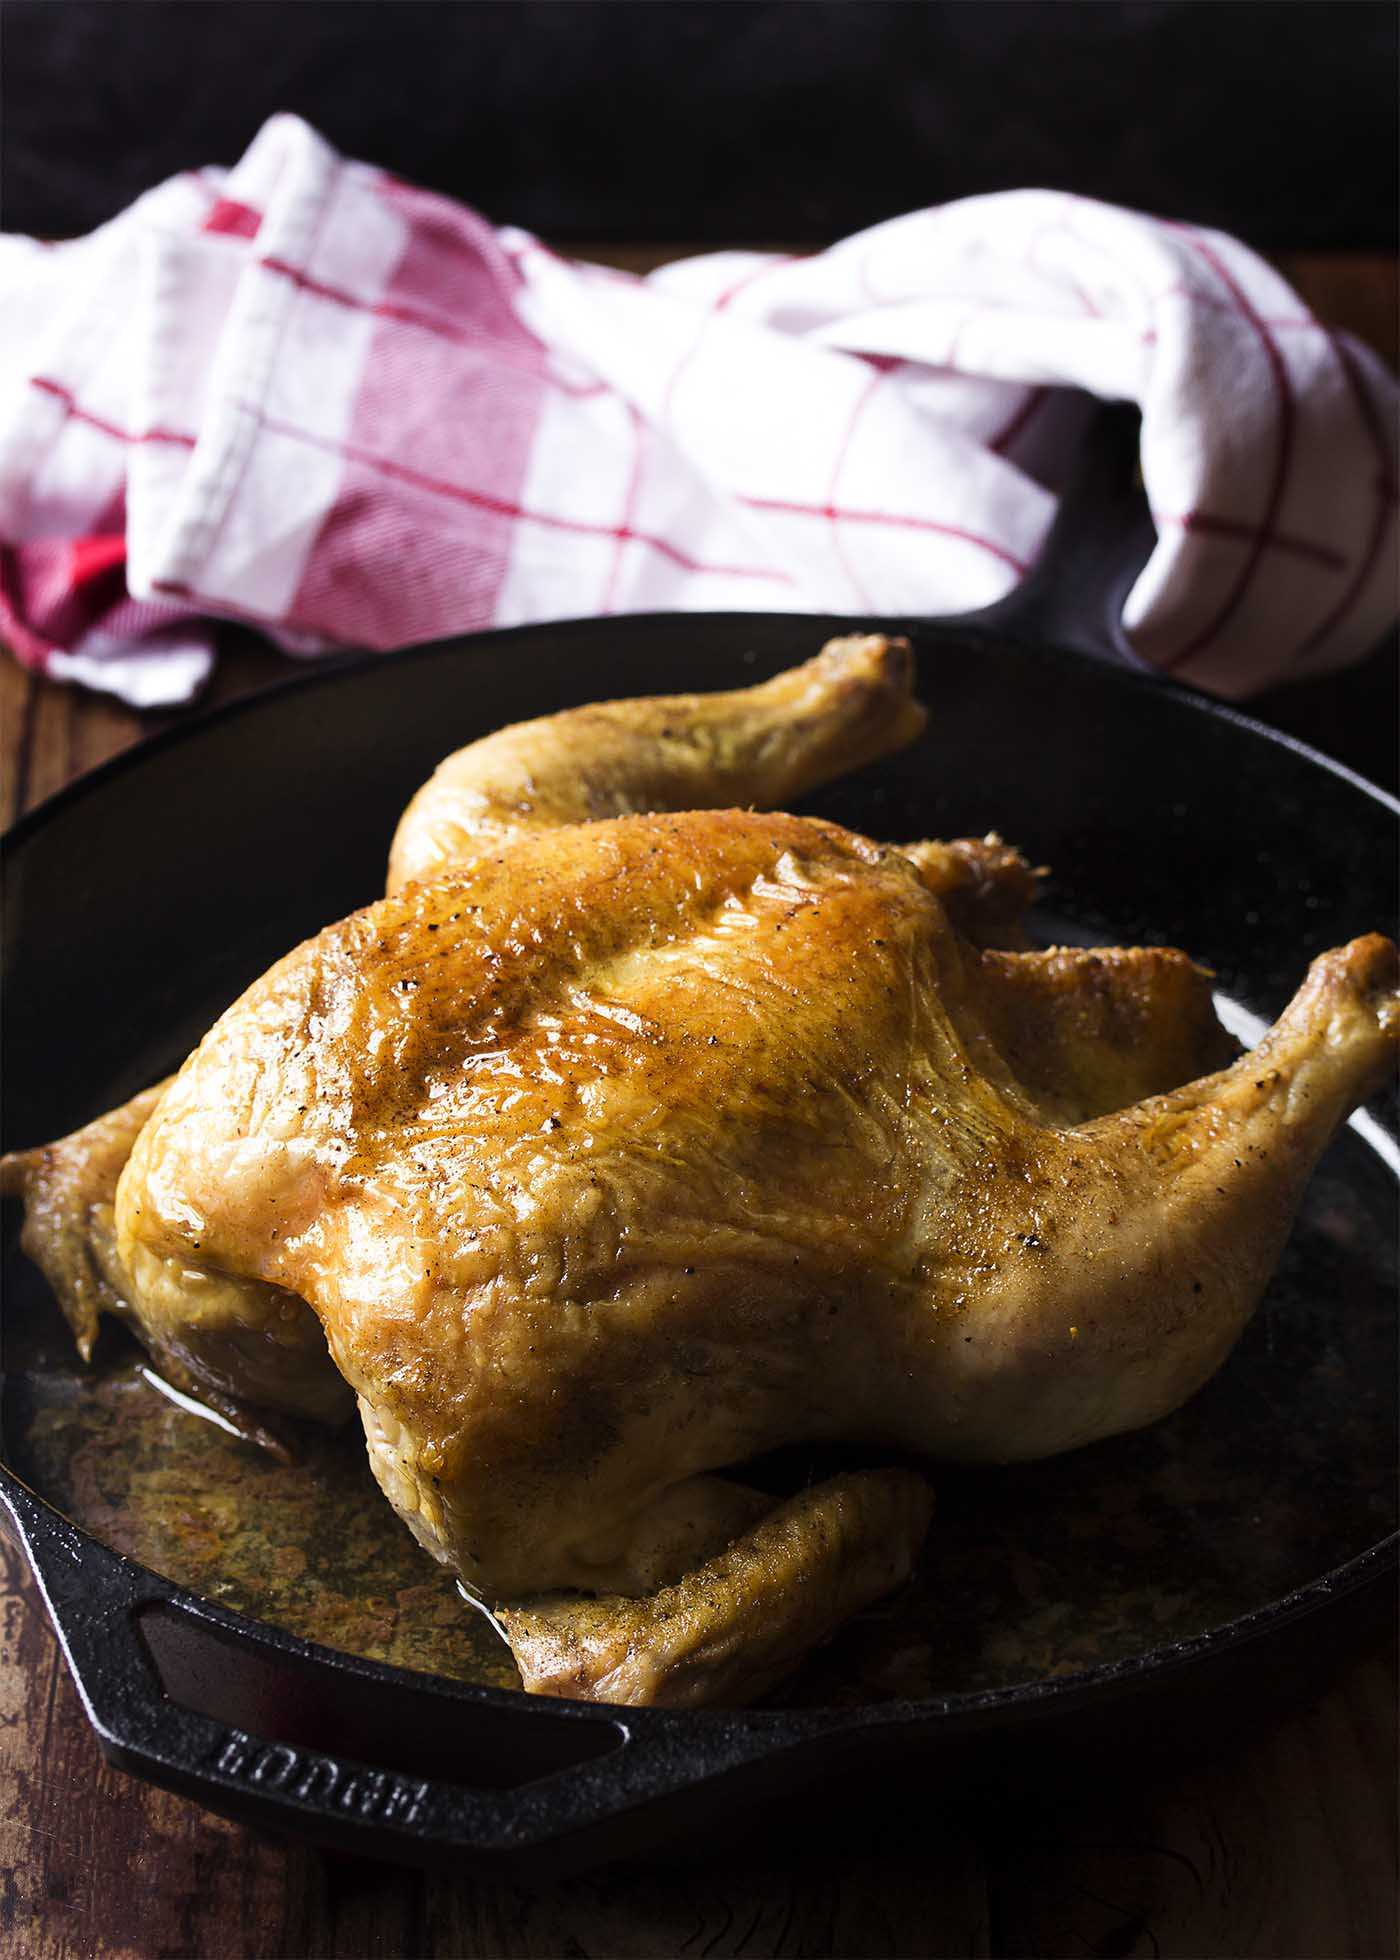 Golden brown roast chicken in a cast iron pan.